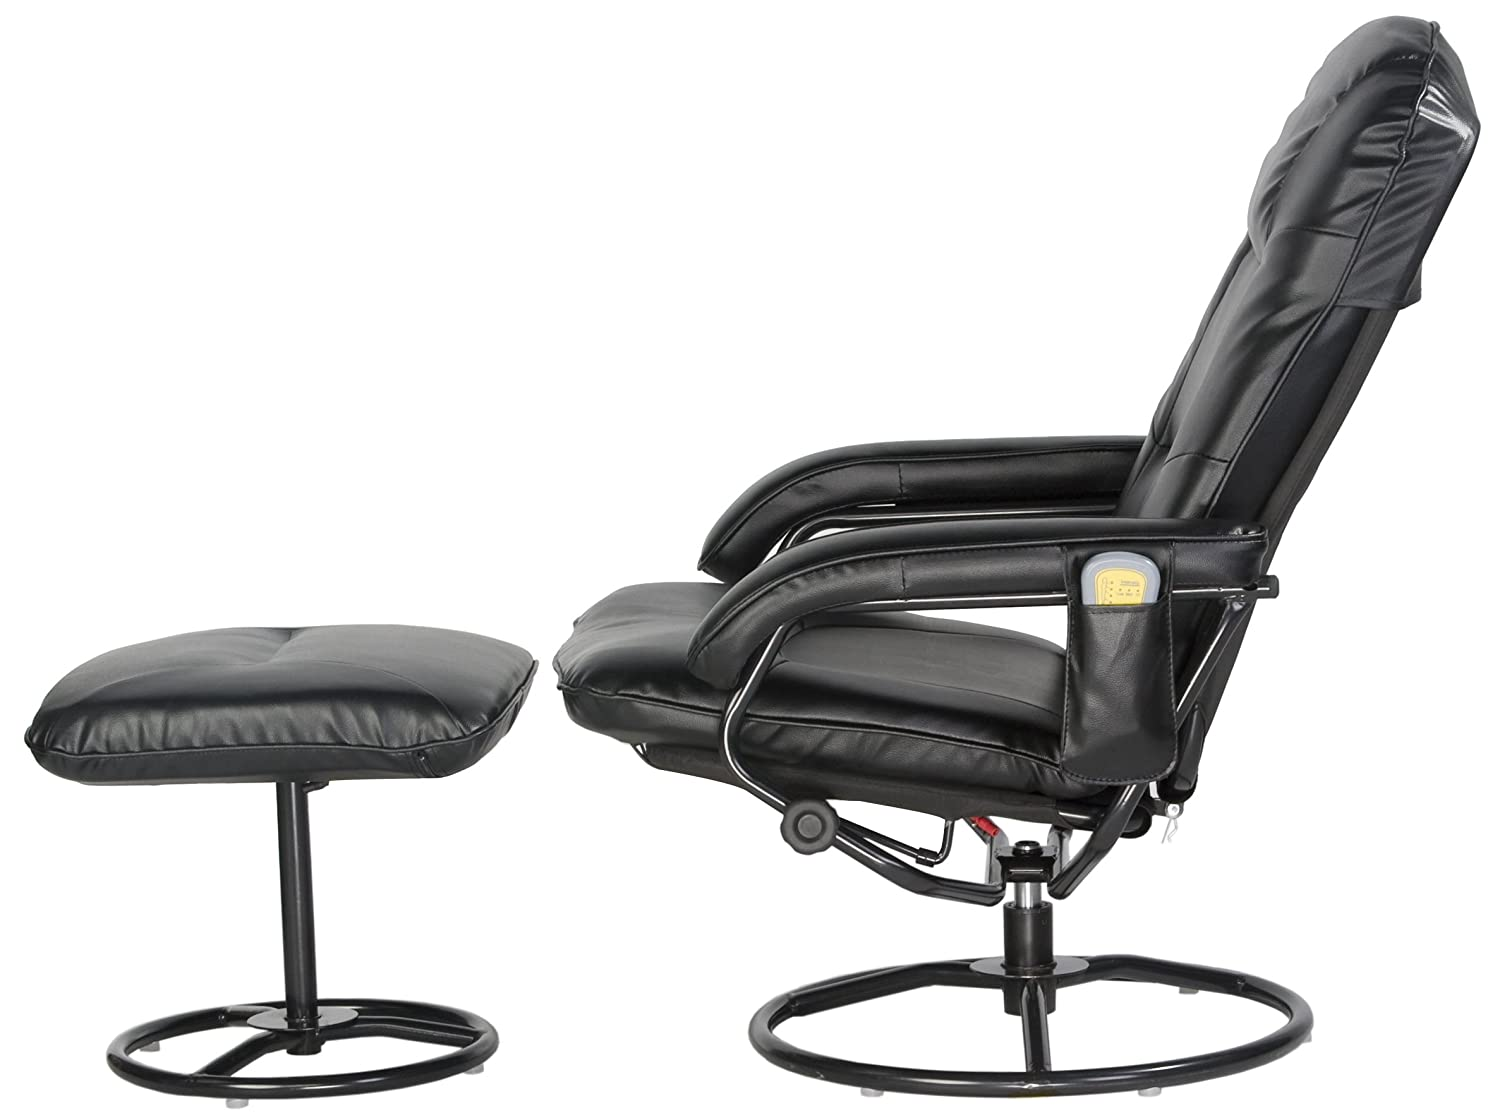 Amazon.com Comfort Products 60-0582 Leisure Recliner Chair with 10-Motor Massage u0026 Heat Black  sc 1 st  Amazon.com & Amazon.com: Comfort Products 60-0582 Leisure Recliner Chair with ... islam-shia.org